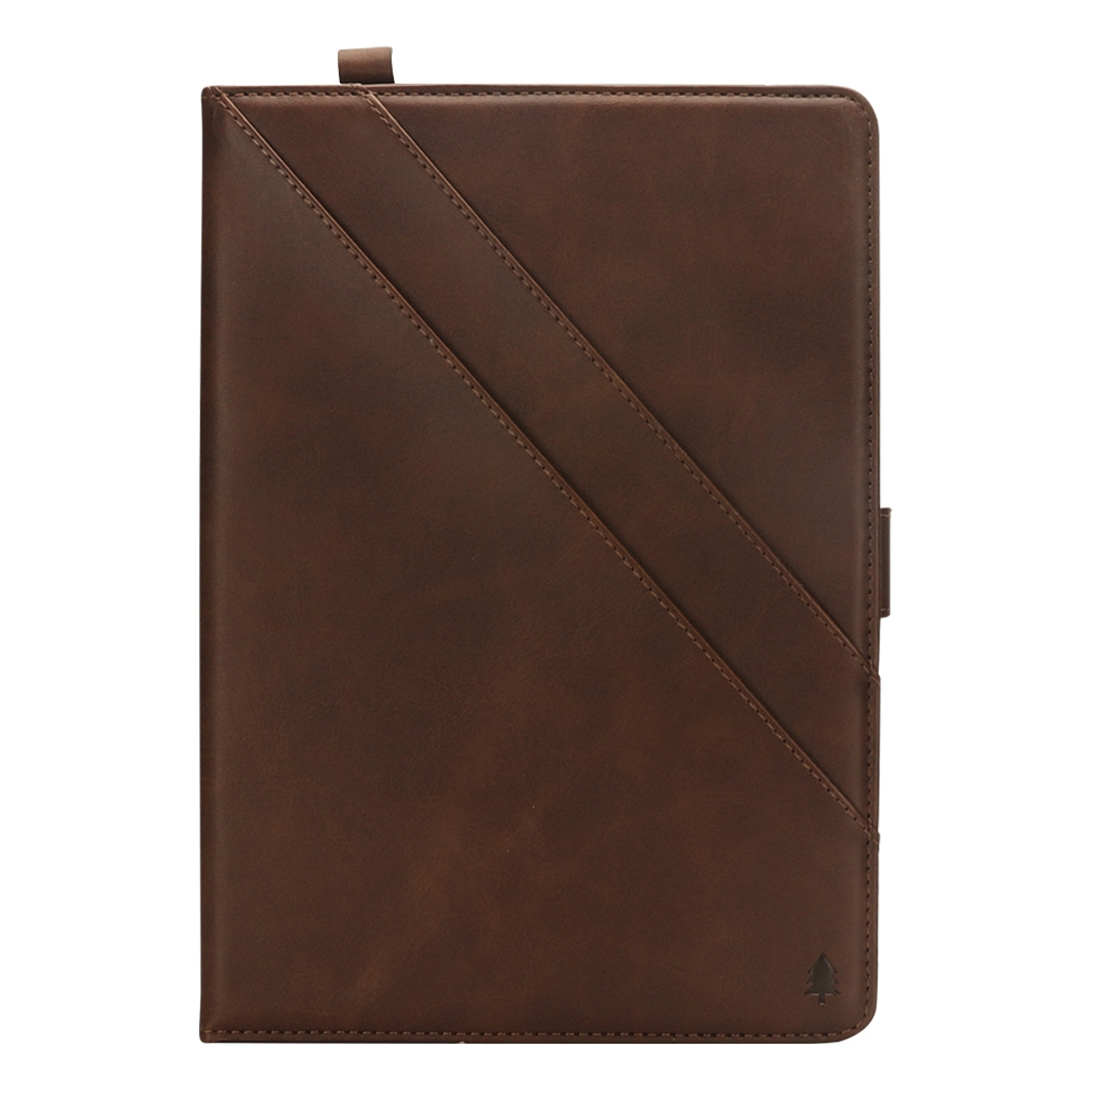 Bi-Stand Leather iPad Pro 12.9 Case (2018), w/Sleeves, Frame, Pen Holder (Dark Brown)